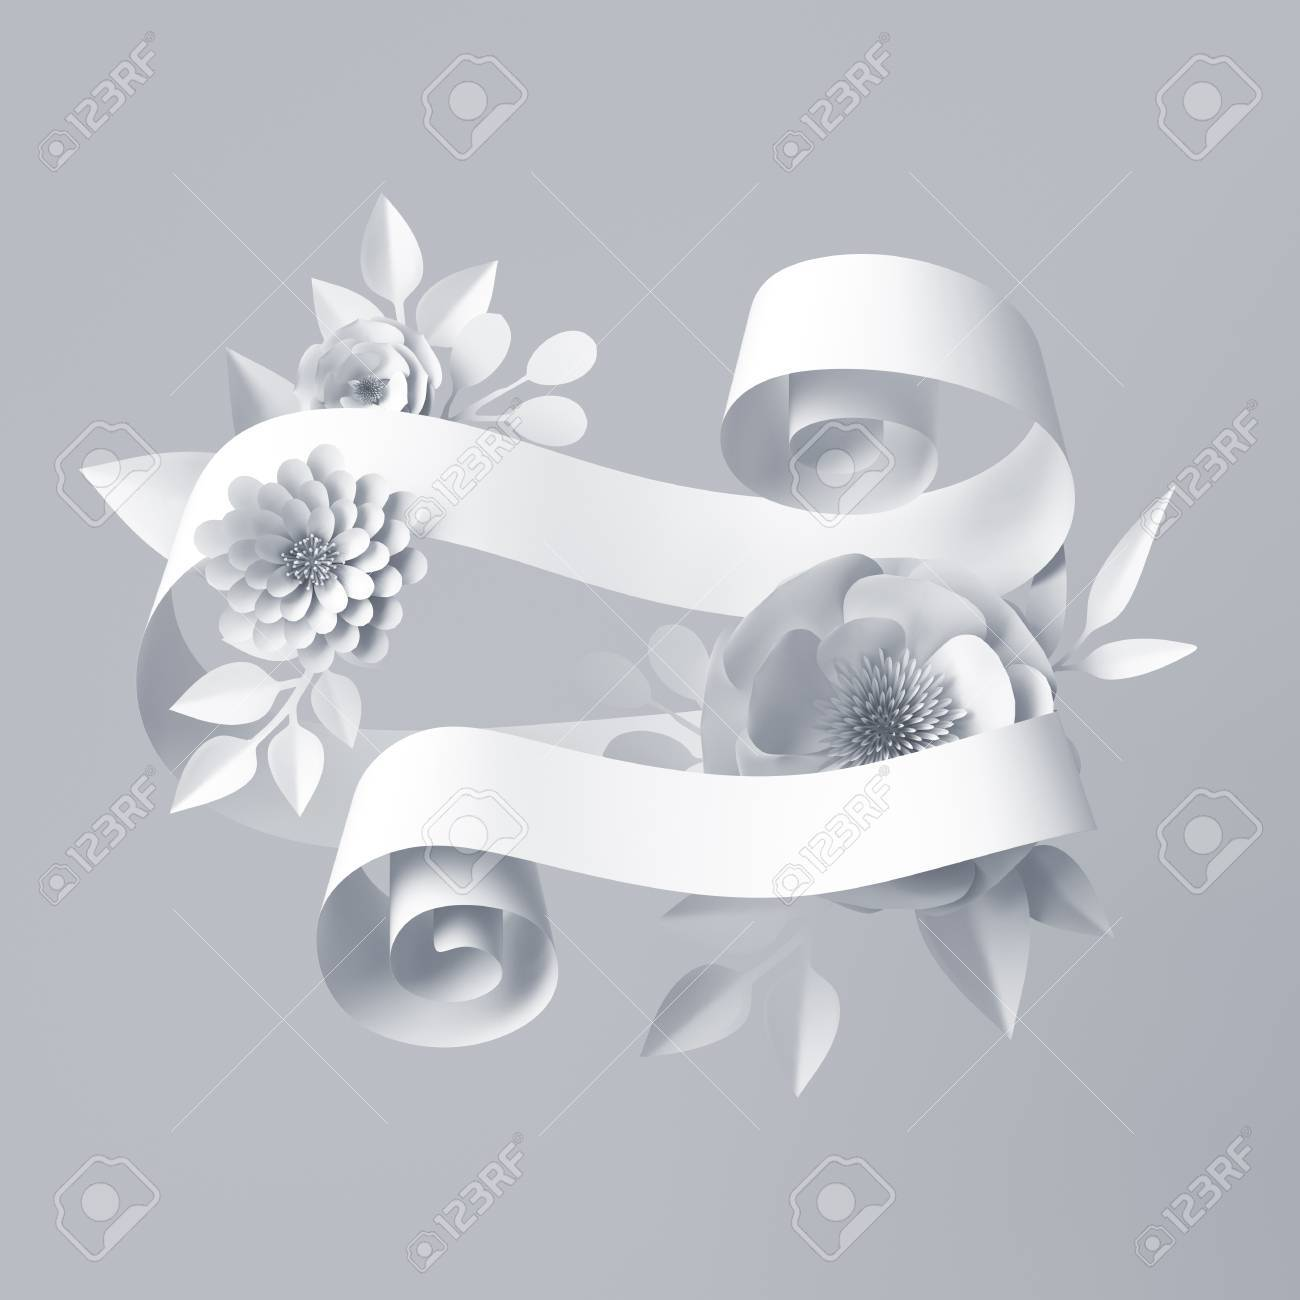 3d Render, Abstract White Curly Ribbon, Paper Flowers, Festive ...